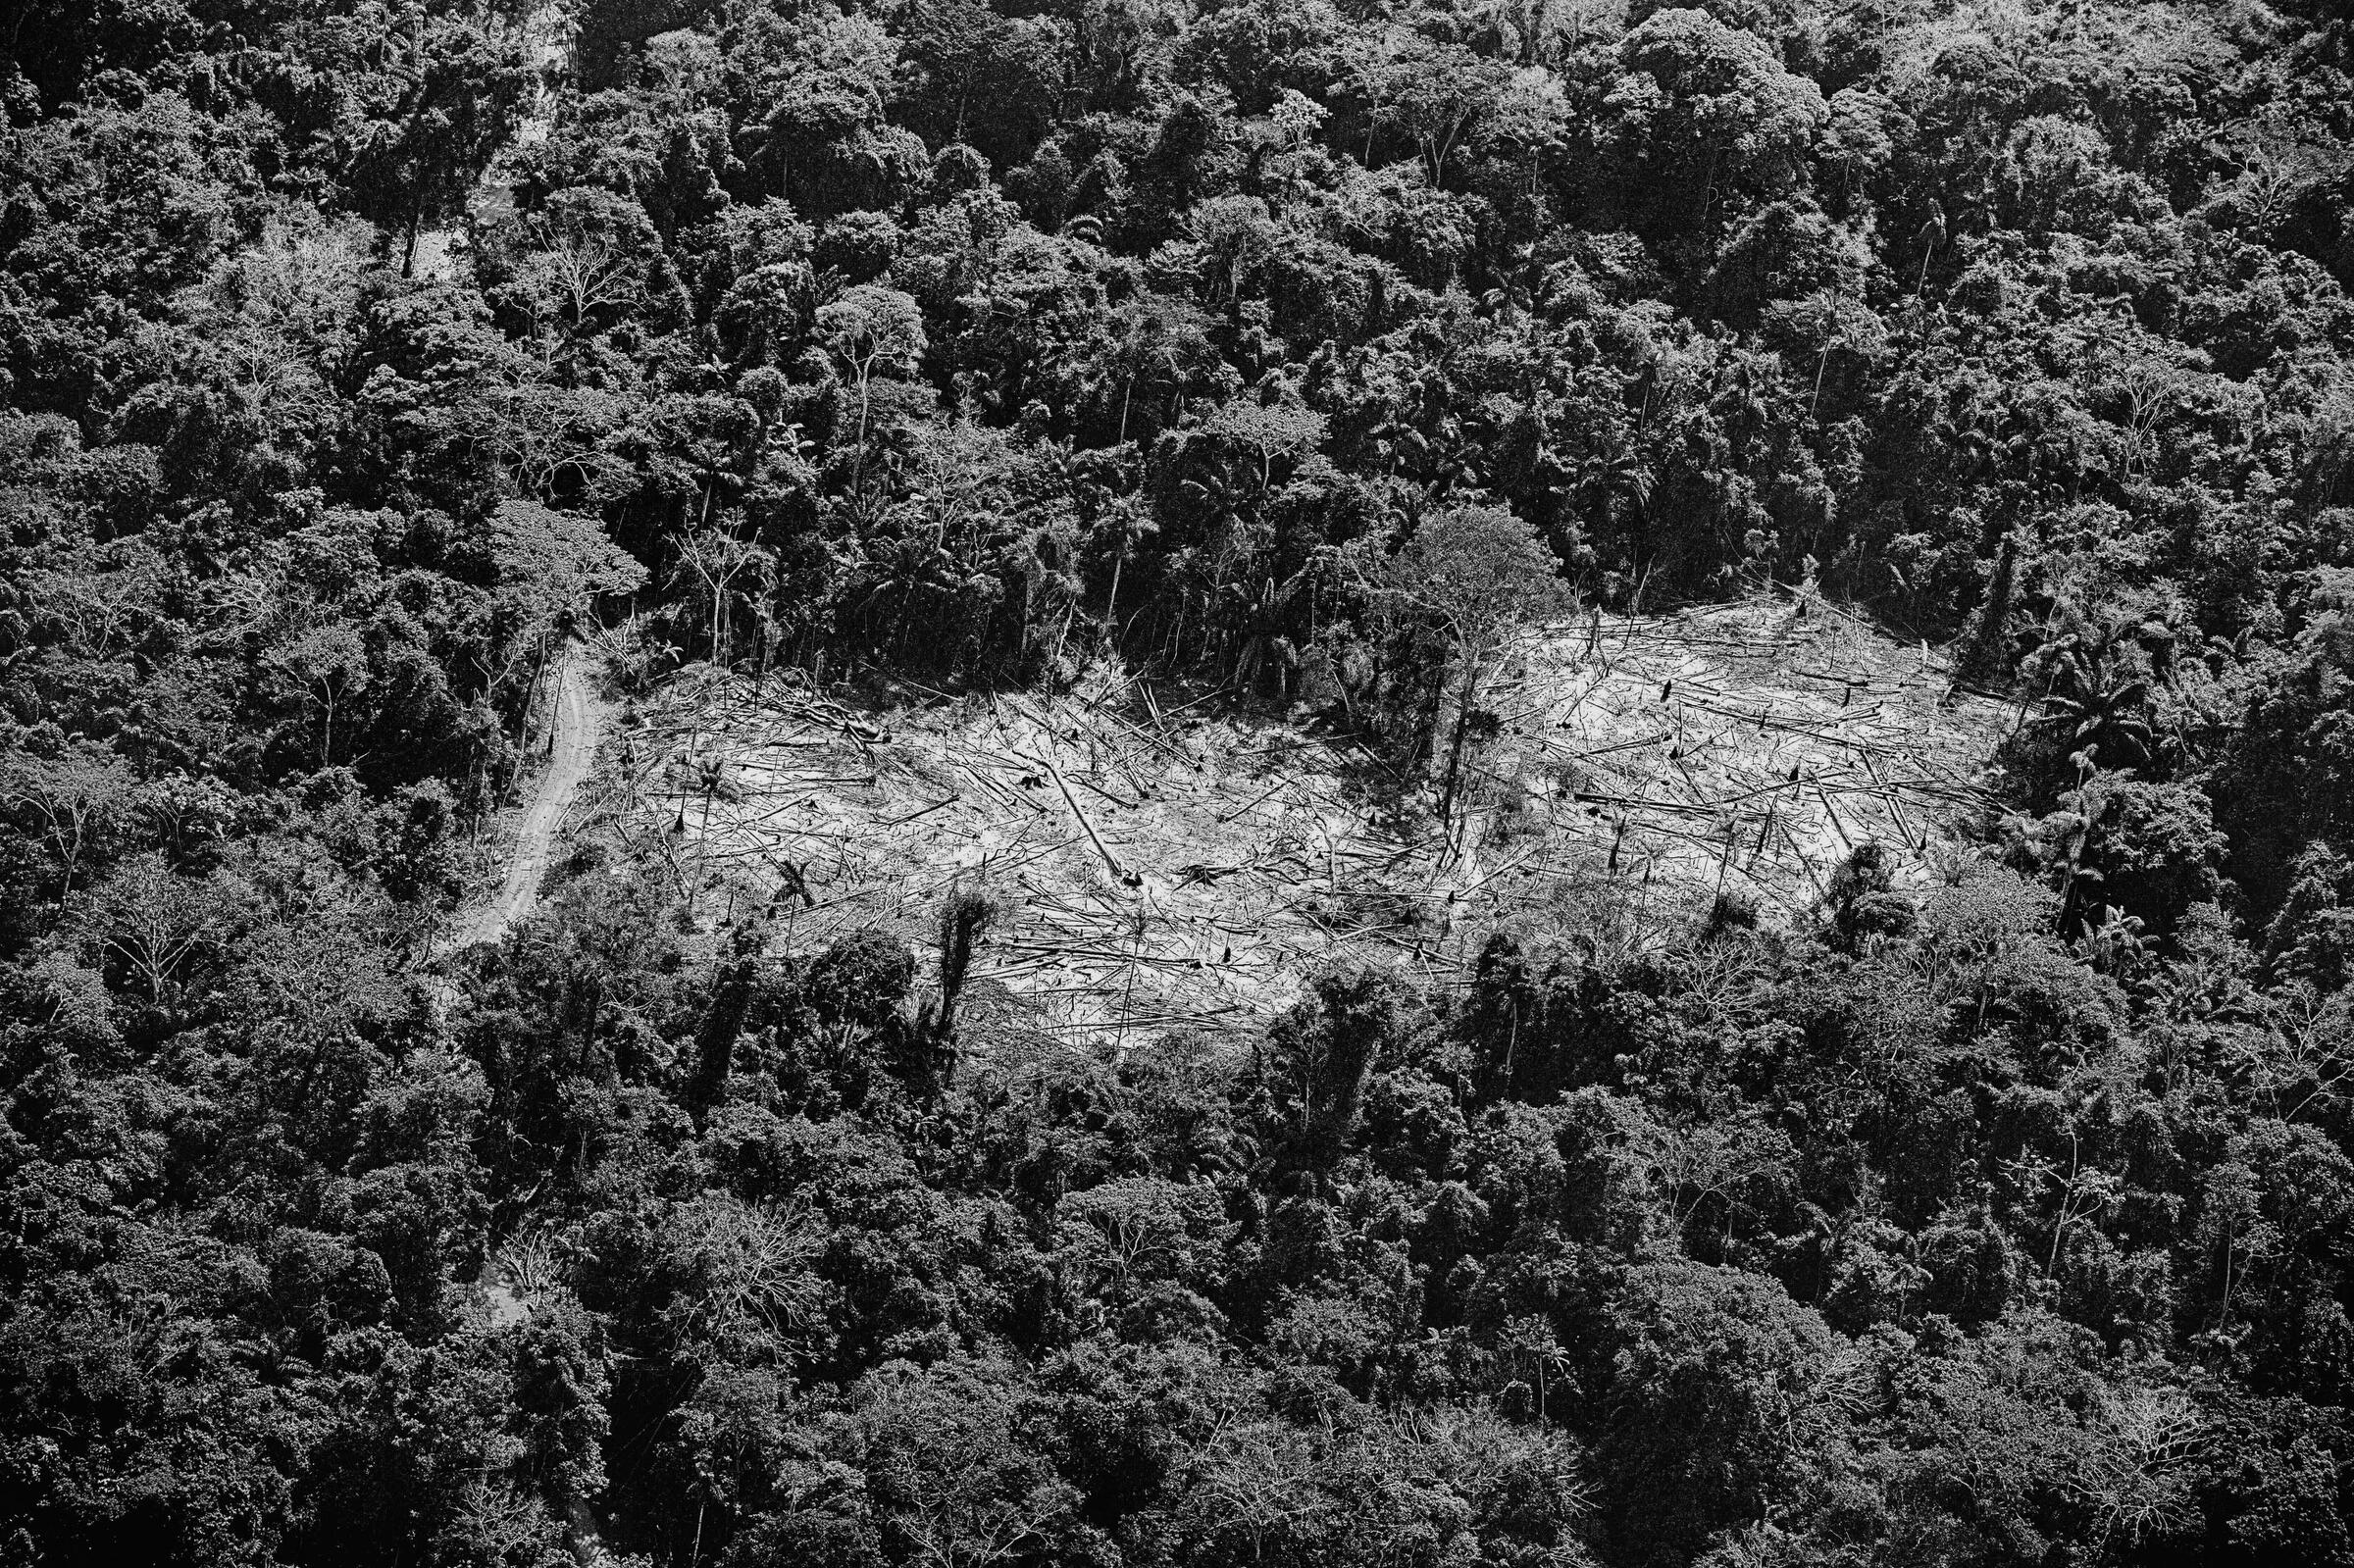 Deforestation in the Menkragnoti Indigenous territory in Brazil, which has also been targeted by mining companies.